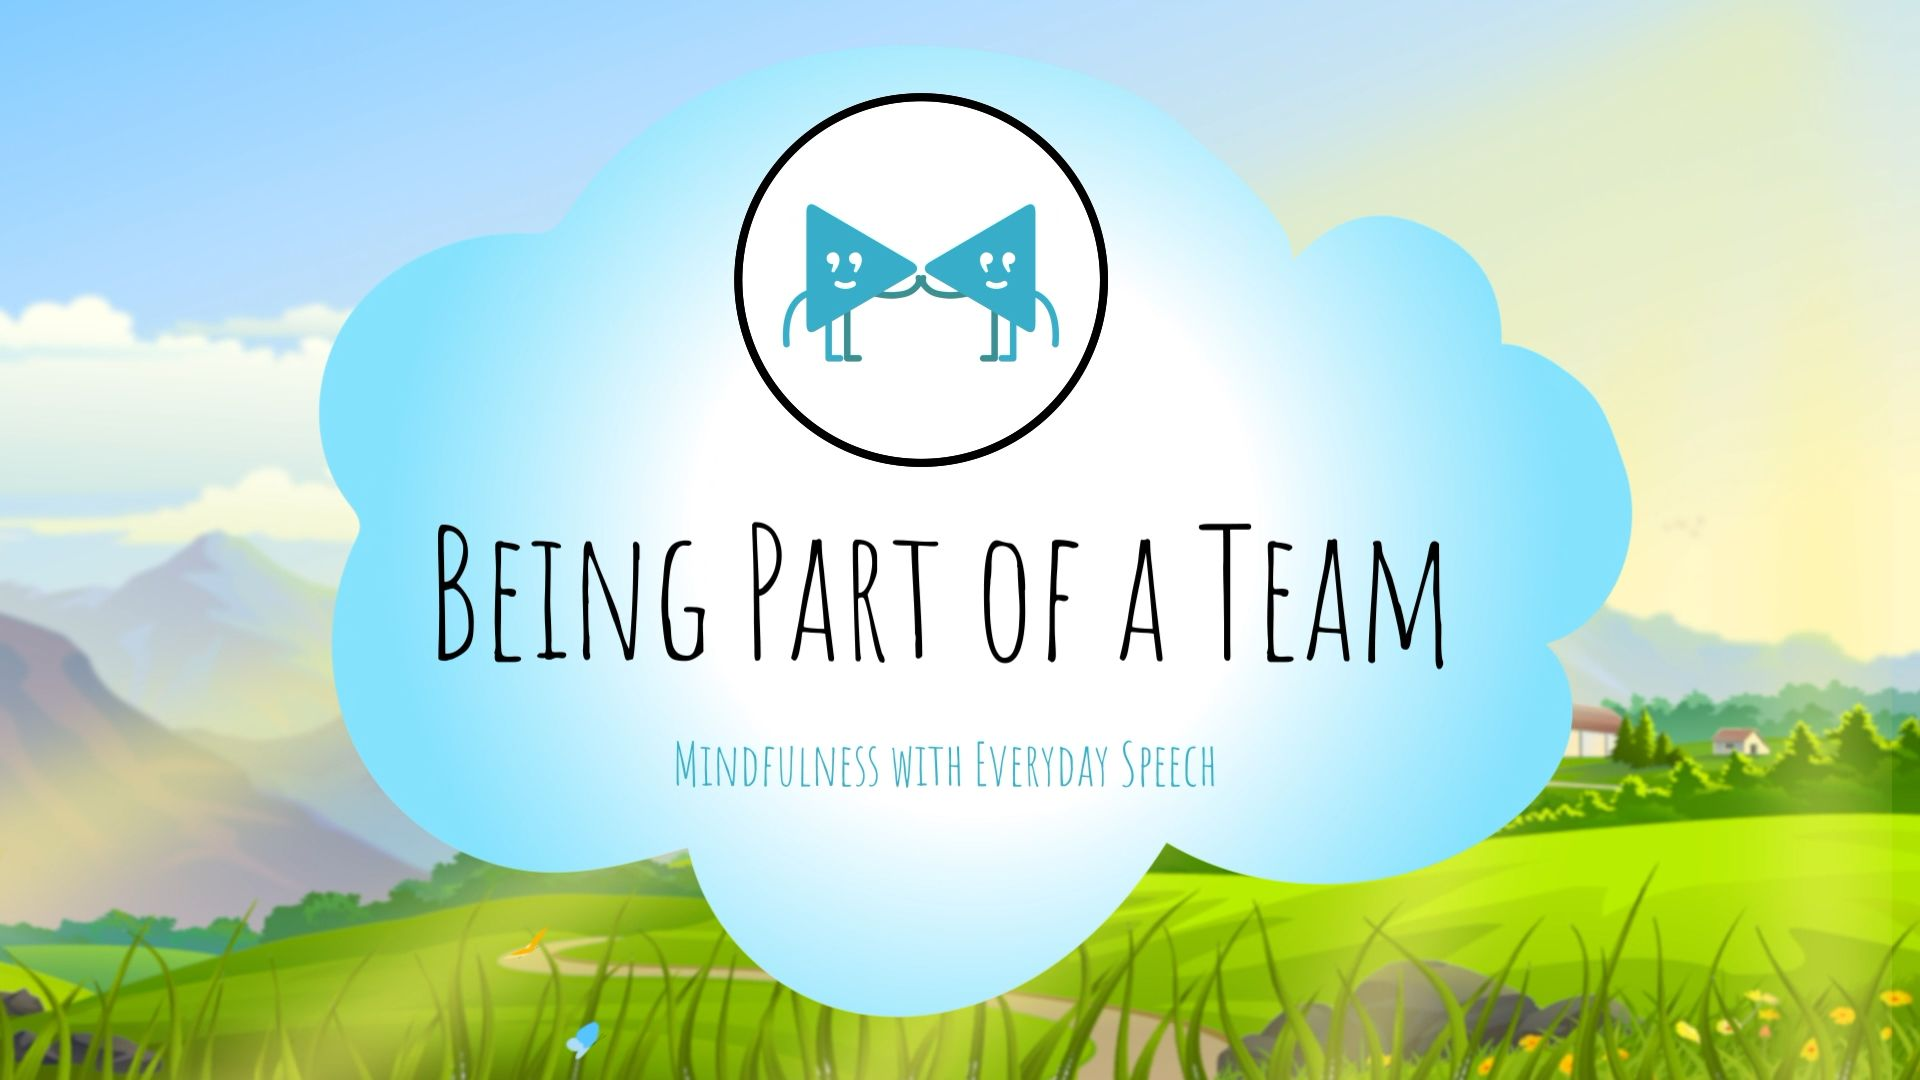 Being Part of A Team